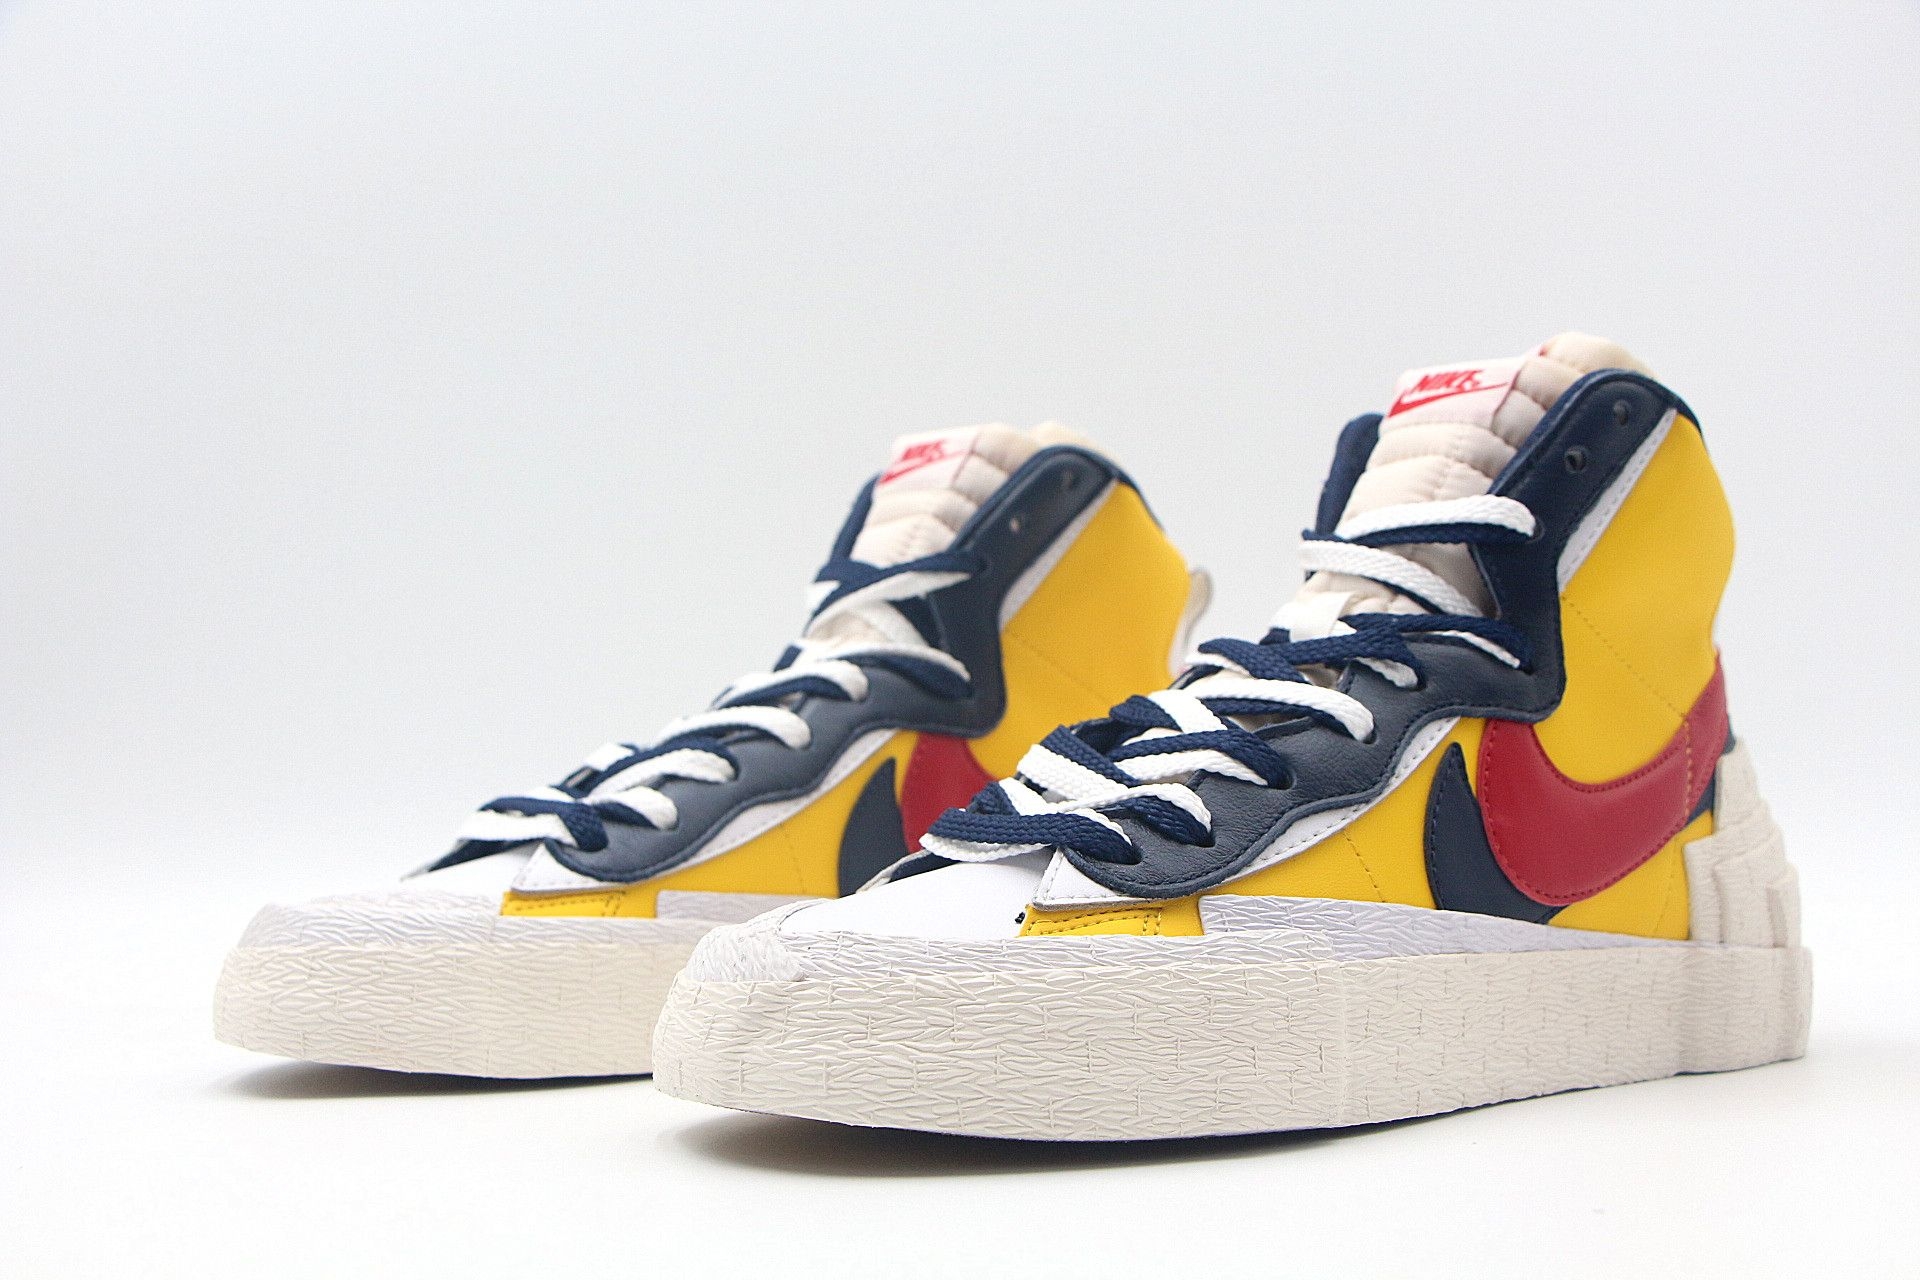 acelerador Absoluto El principio  Sacai x Nike Blazer With Dunk BV0072-700 White Yellow Red in 2020 | Nike  blazer, Red nike, Nike